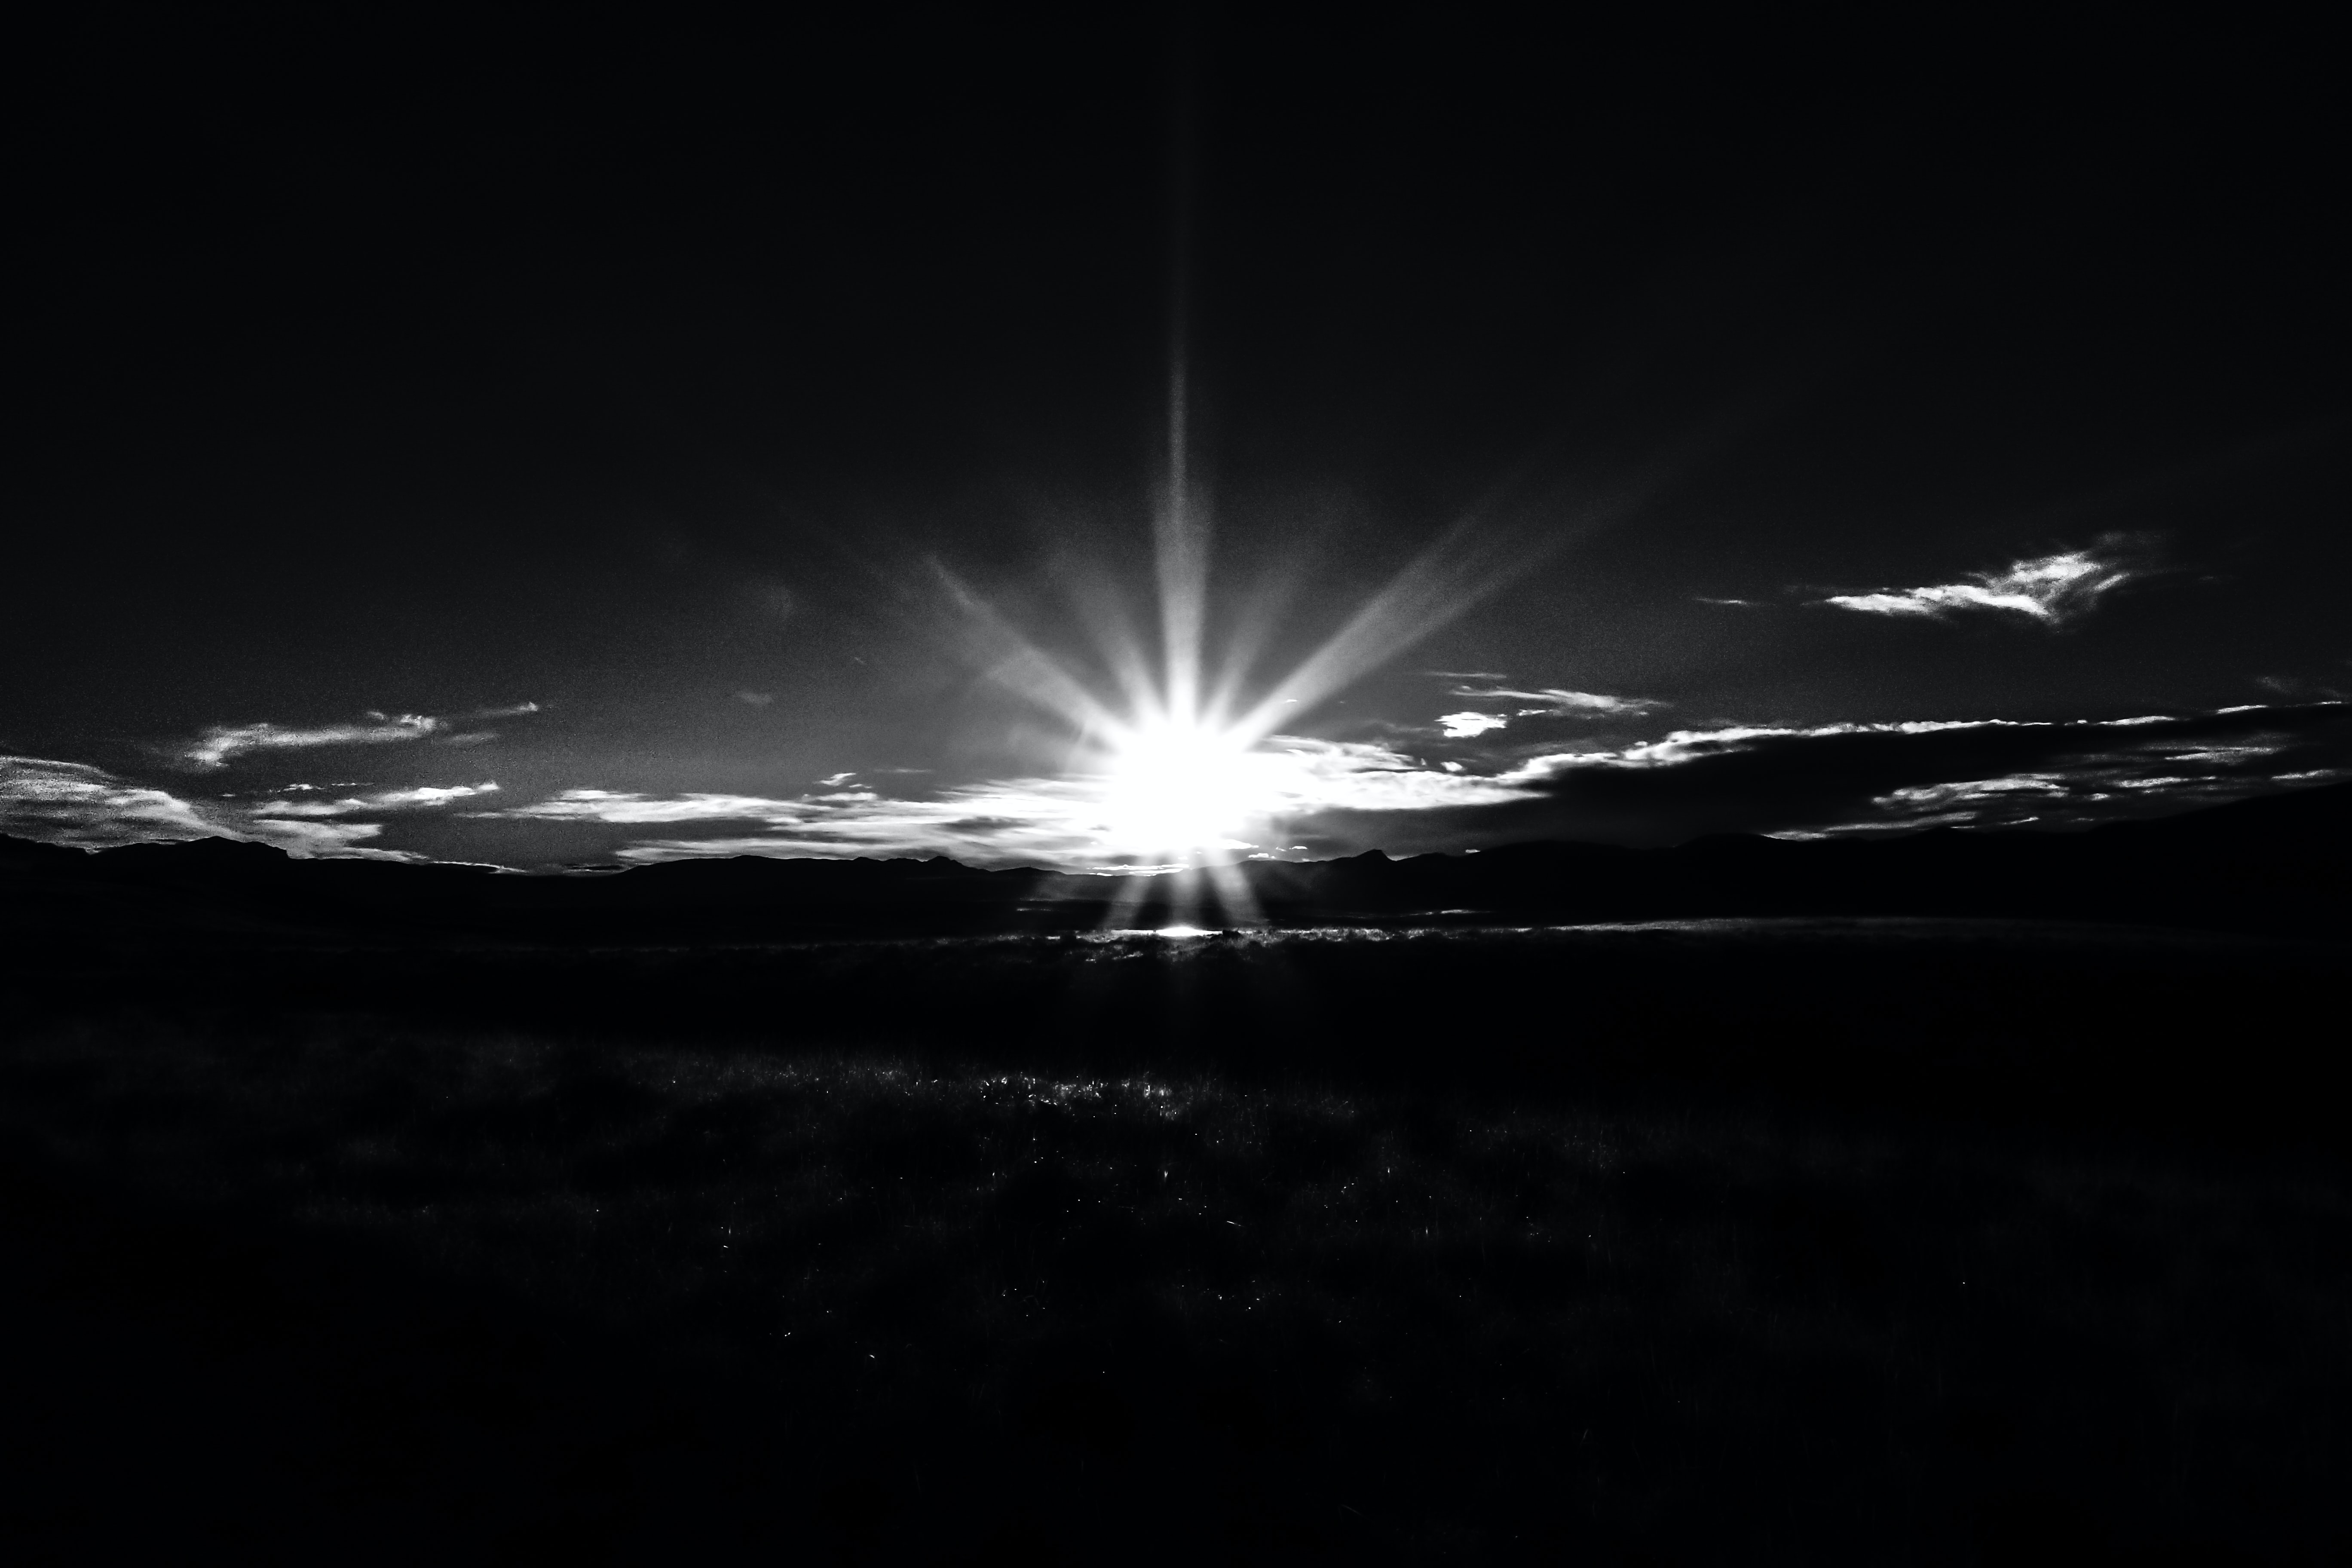 sunrise grayscale photo